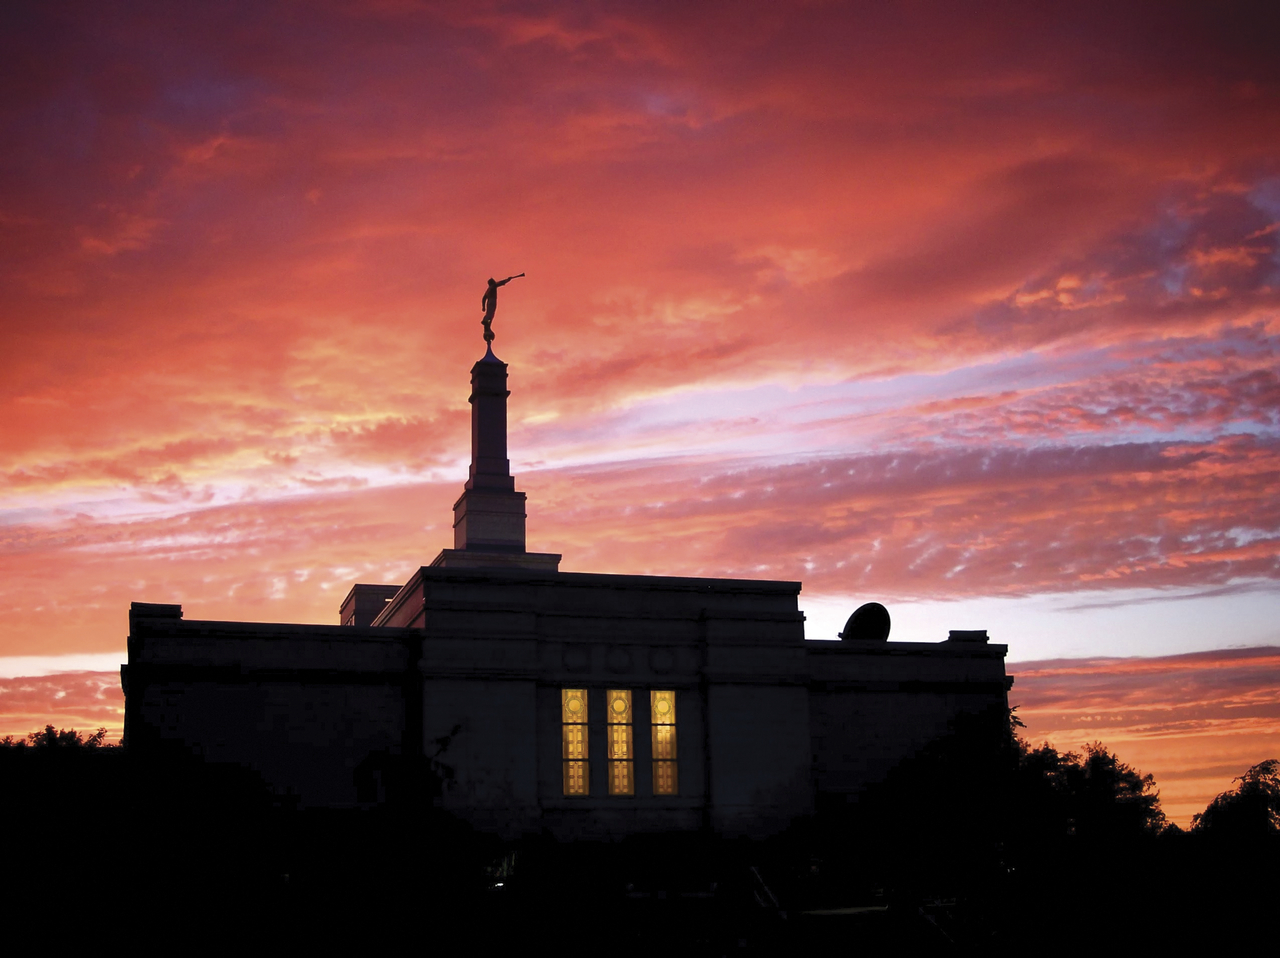 A silhouetted photograph of the Halifax Nova Scotia Temple at sunset, with a red sky behind it and a window glowing yellow from within.